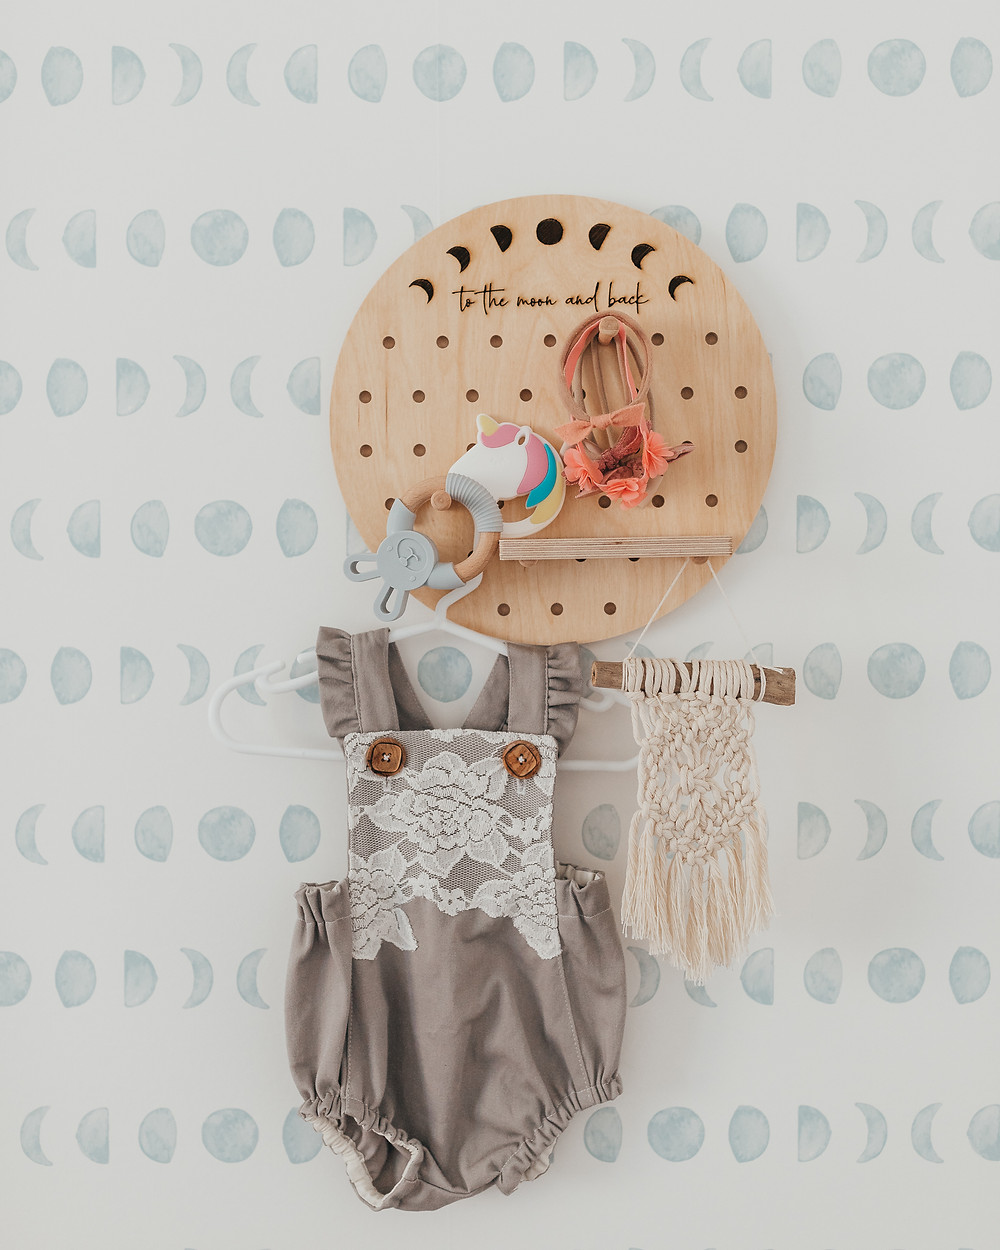 A wooden peg board with a lace and grey baby romper hanging from it.